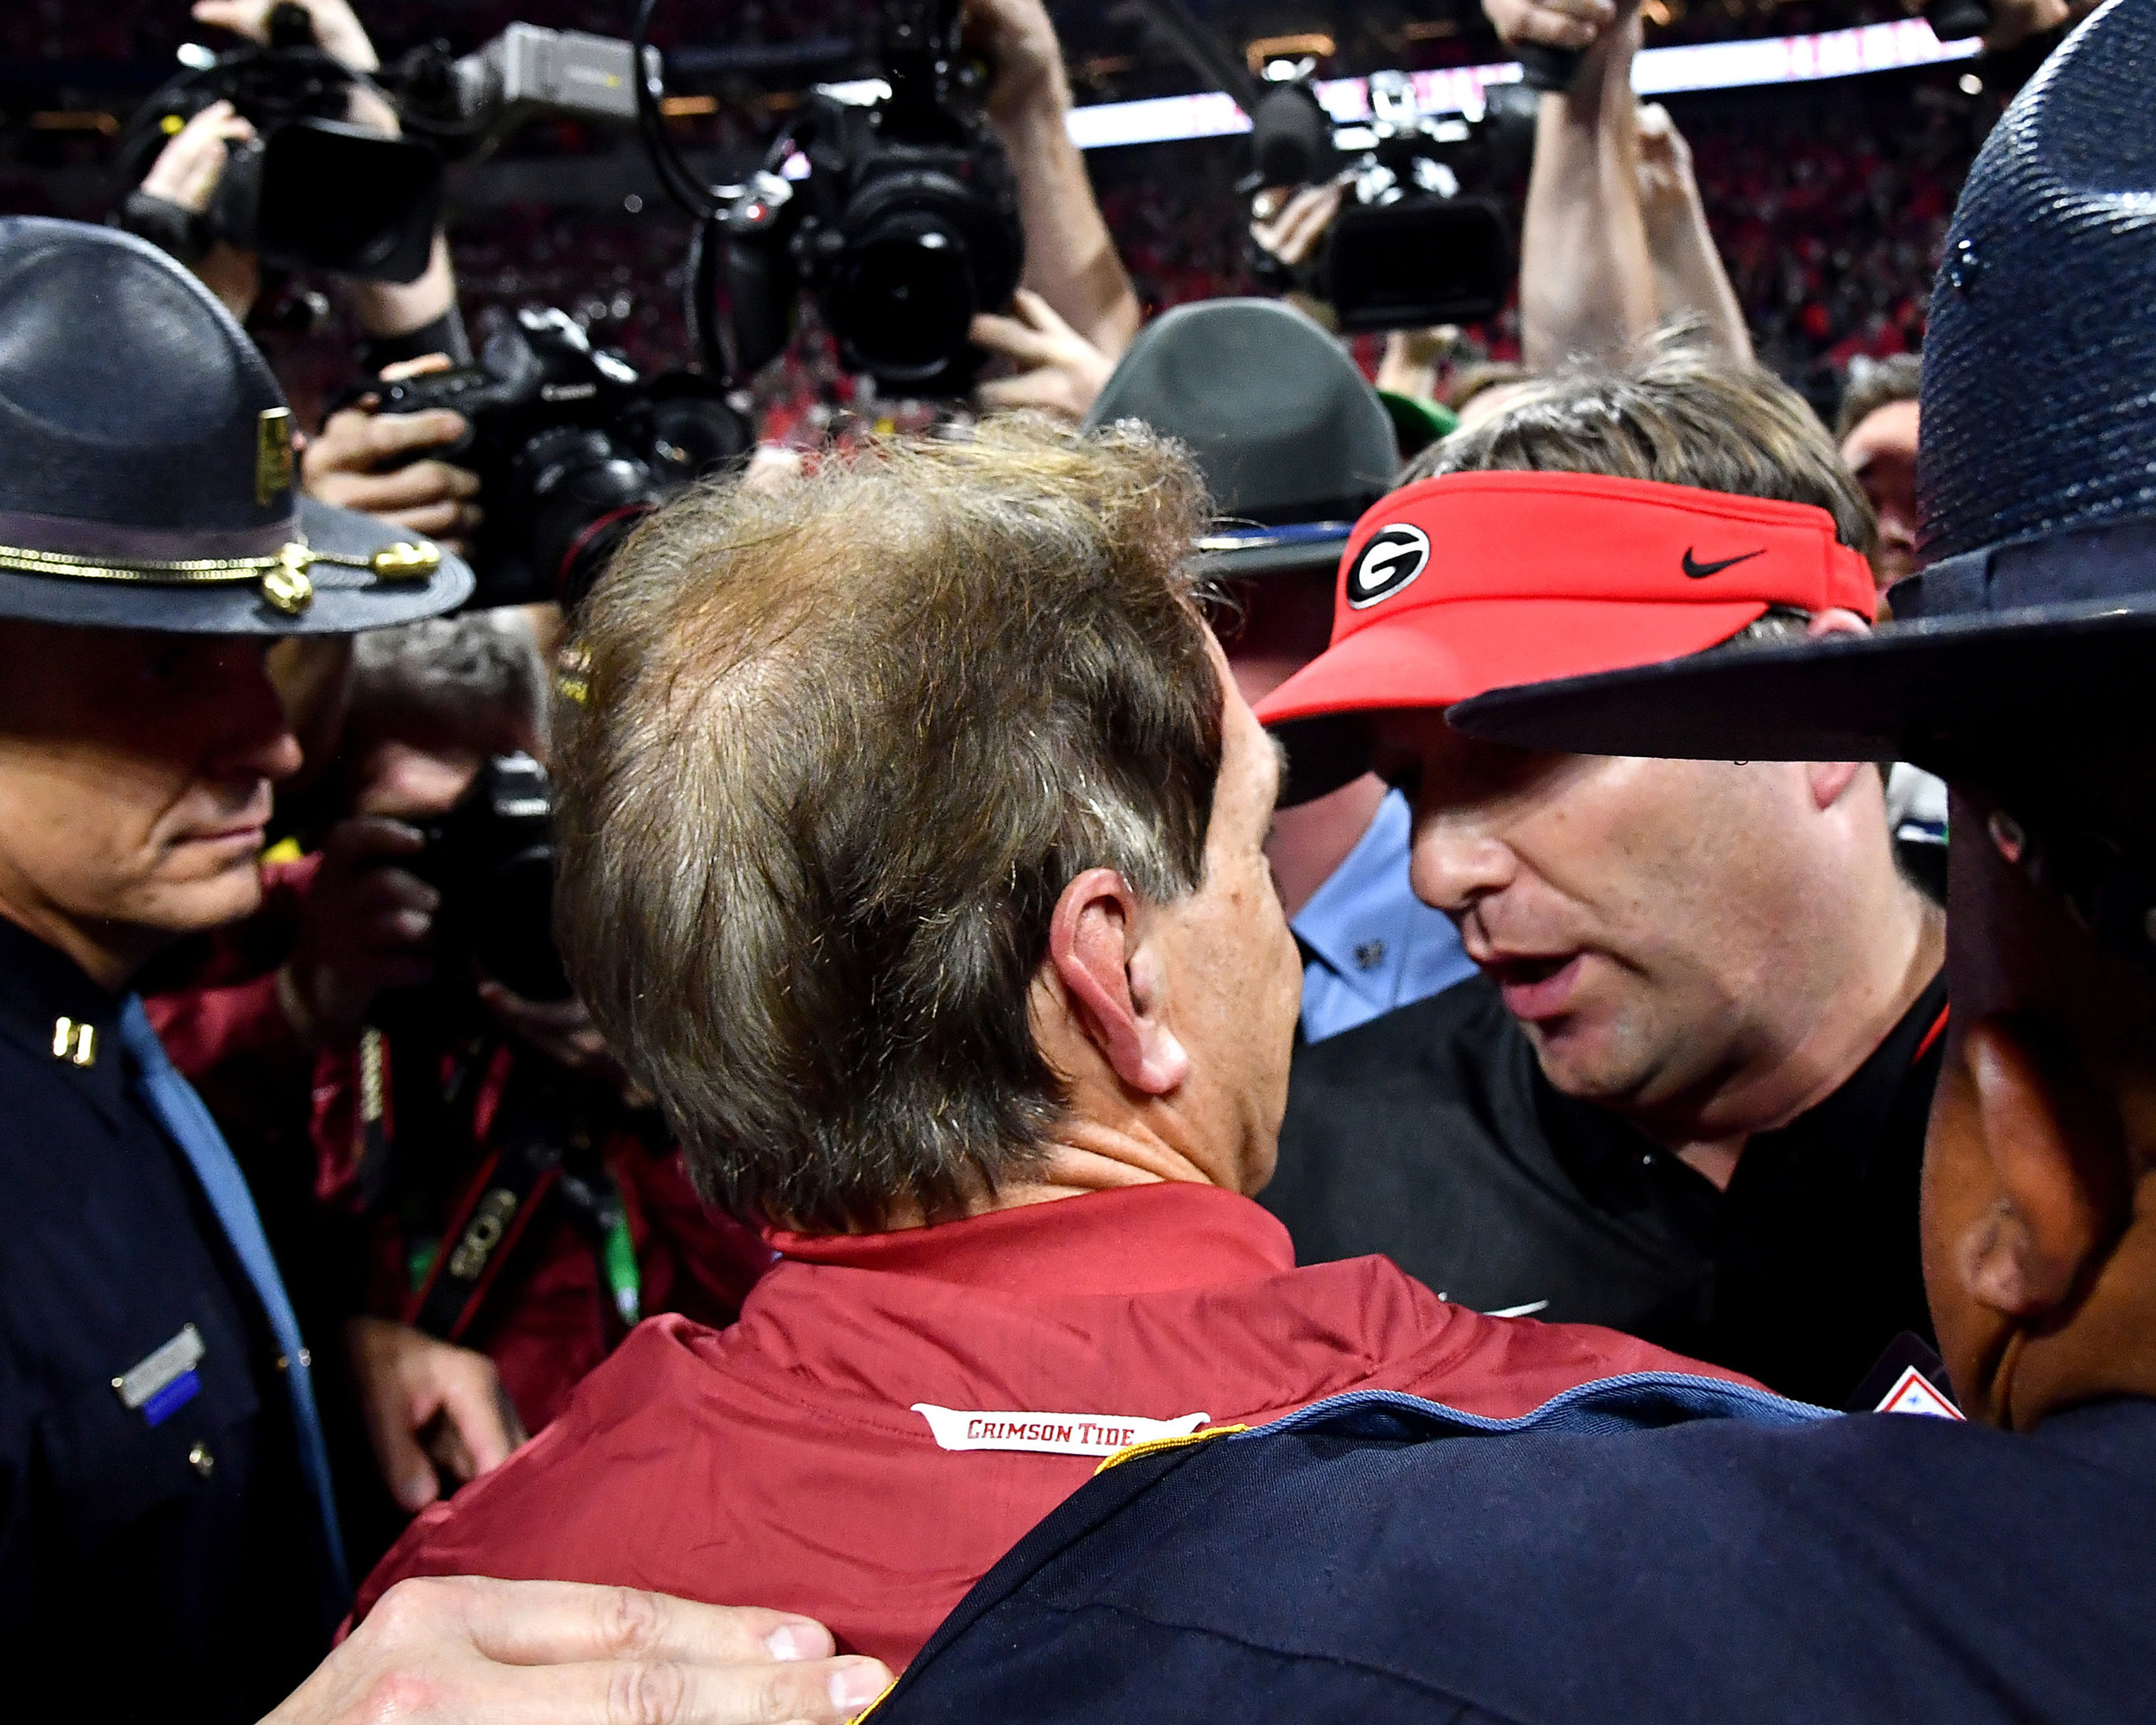 Alabama Crimson Tide head coach Nick Saban meets Georgia Bulldogs head coach Kirby Smart at the center of the field following Alabama's defeat of Georgia in the 2018 SEC Championship football game at Mercedes-Benz Stadium in Atlanta, Ga., on Dec. 1, 2018. Alabama wins 35-28. (Photo by Lee Walls)